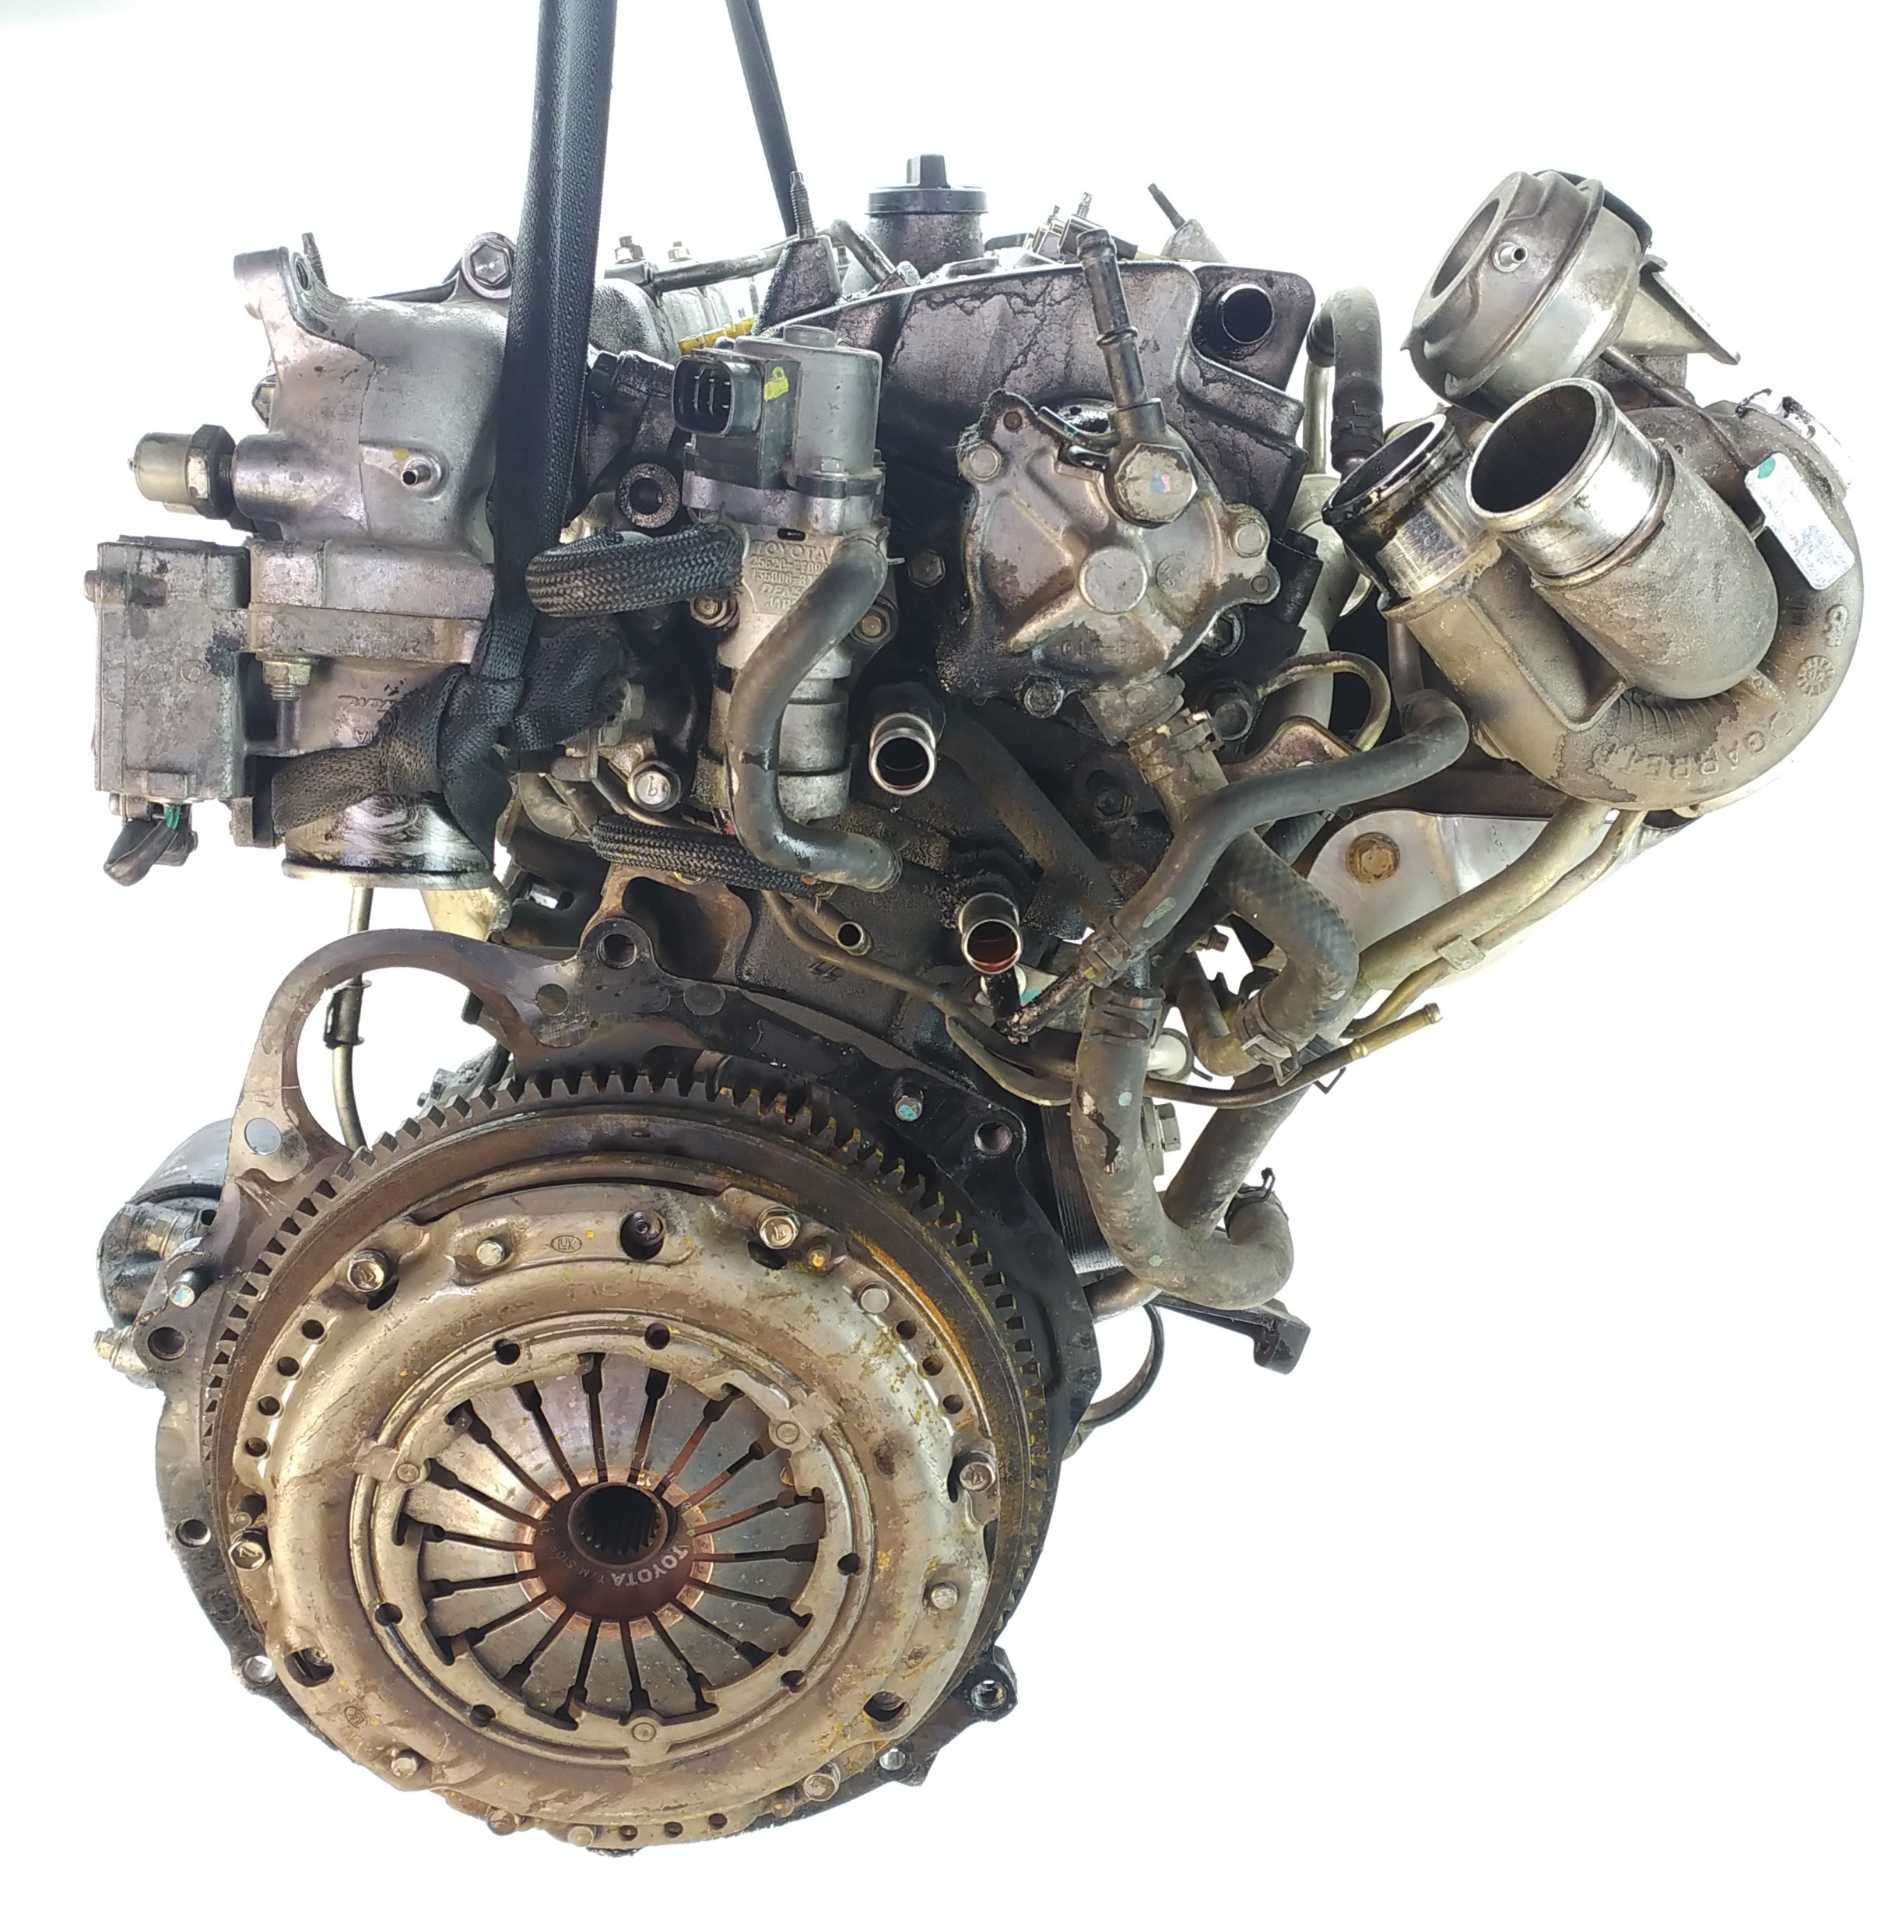 MOTOR COMPLETO TOYOTA COROLLA Verso 2.0 D-4D (CUR10_) (85 KW / 116 CV) (04.2004 - 03.2009)